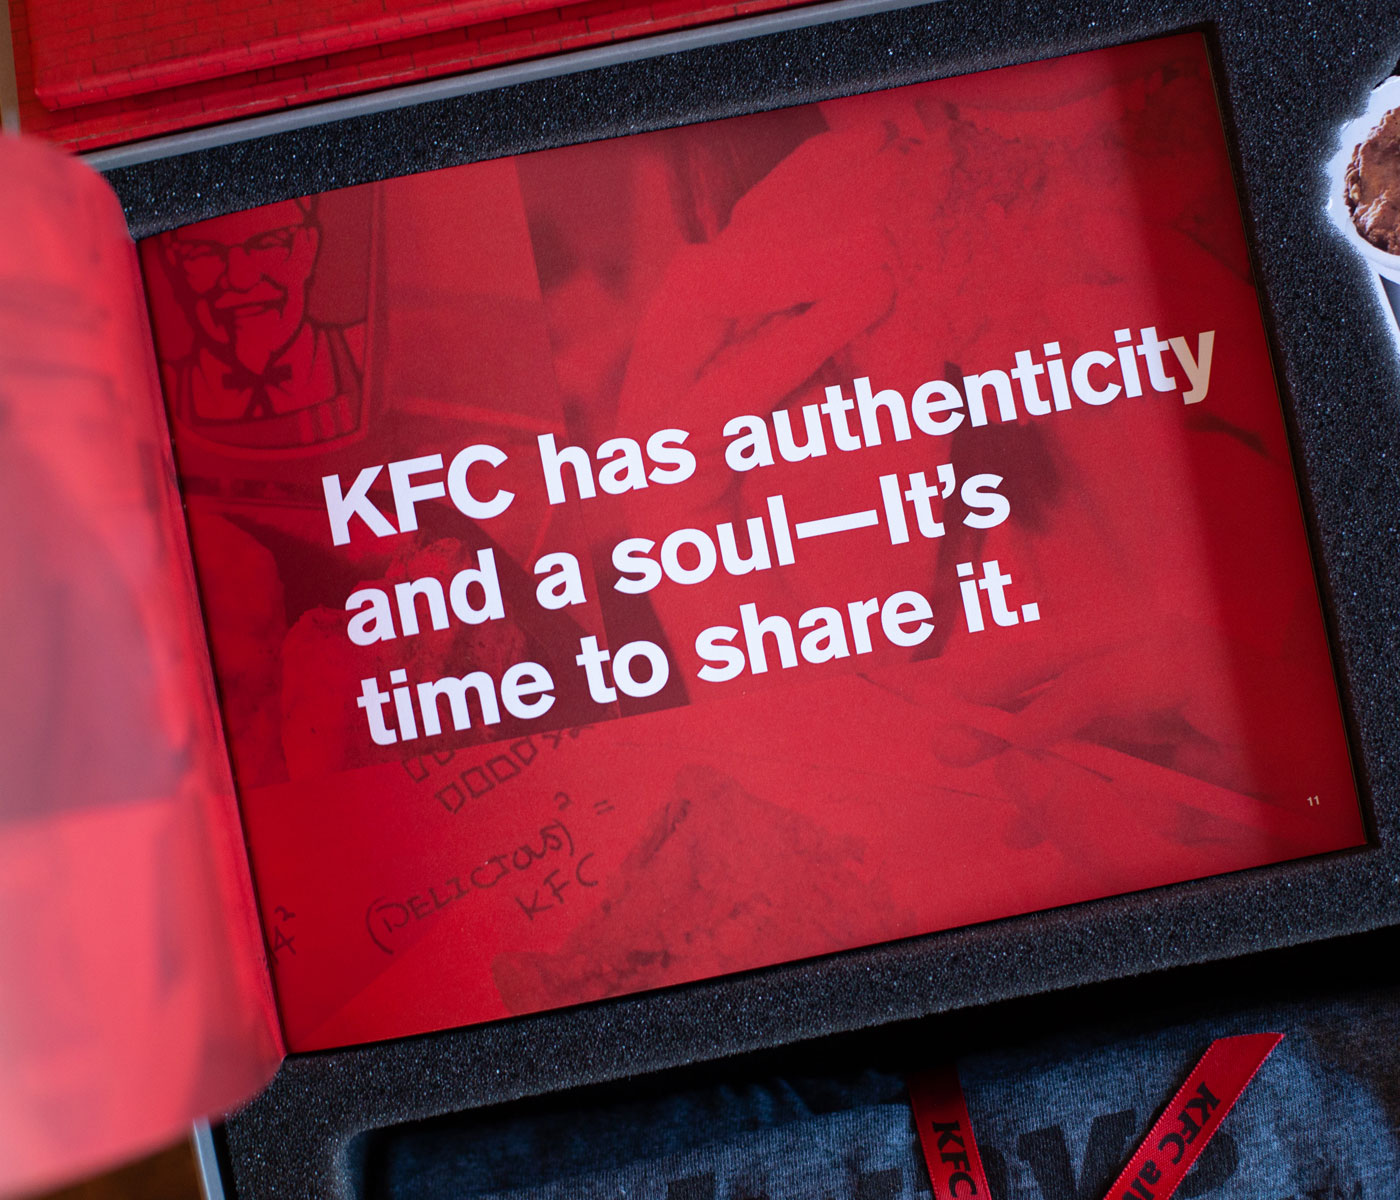 KFC Authenticity Statement